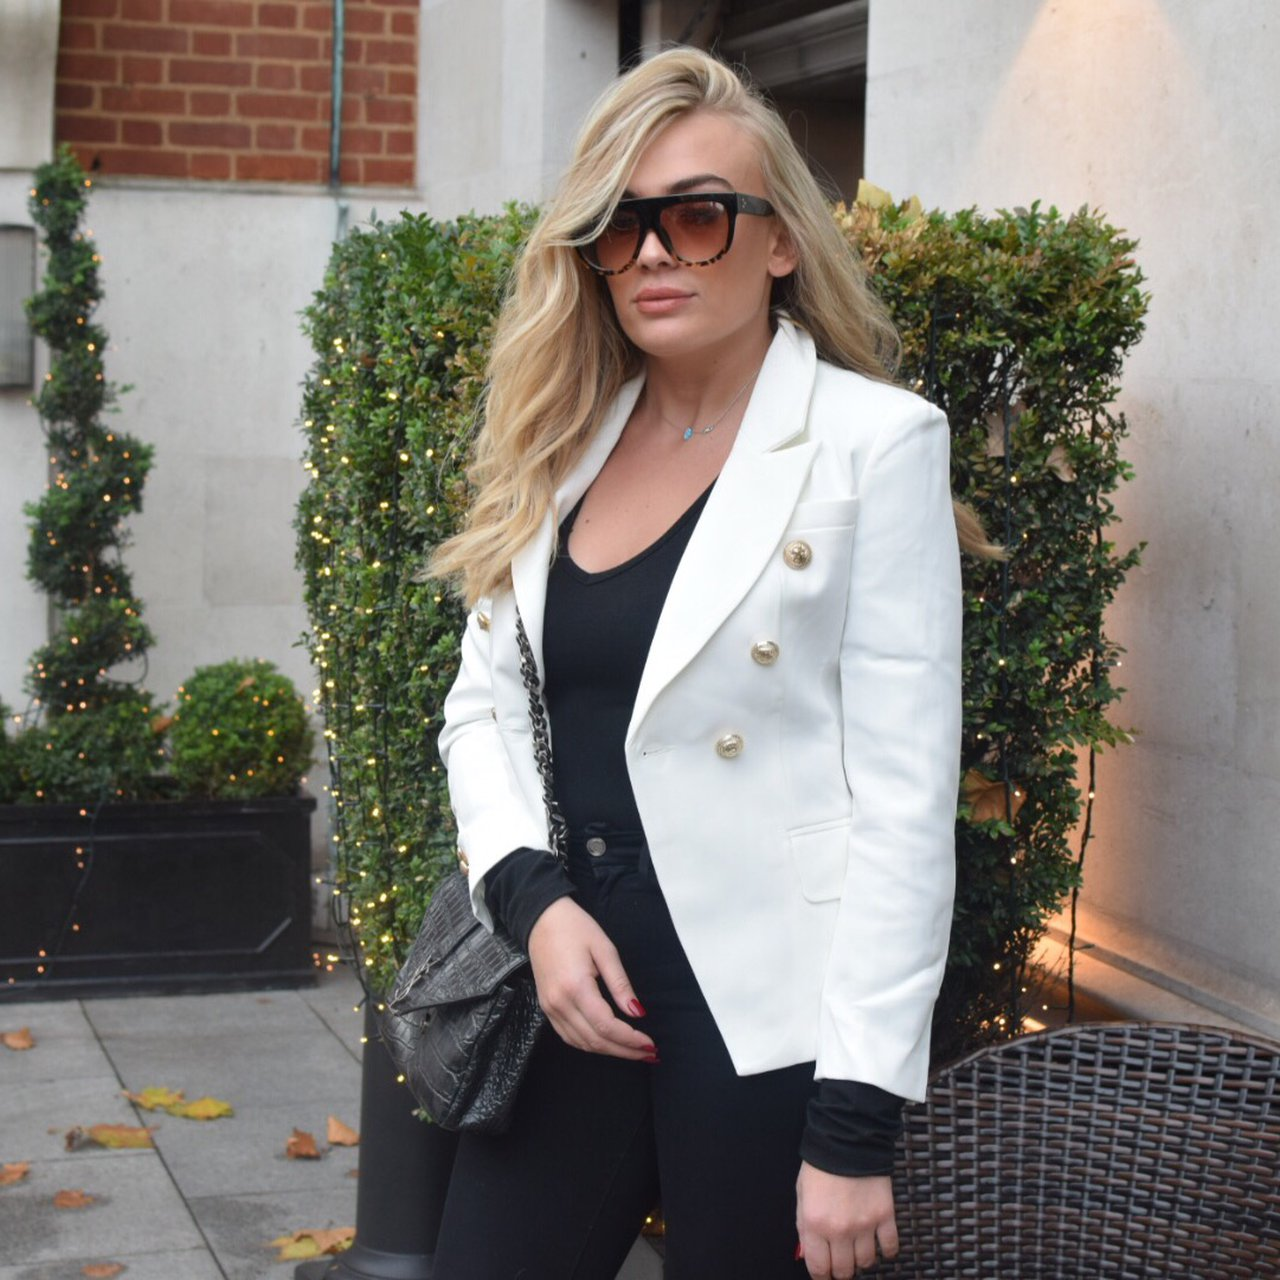 cdc06e96 @vintagekoeasi. 2 months ago. London, United Kingdom. Lovely white balmain  style fitted blazer. 75% silk.